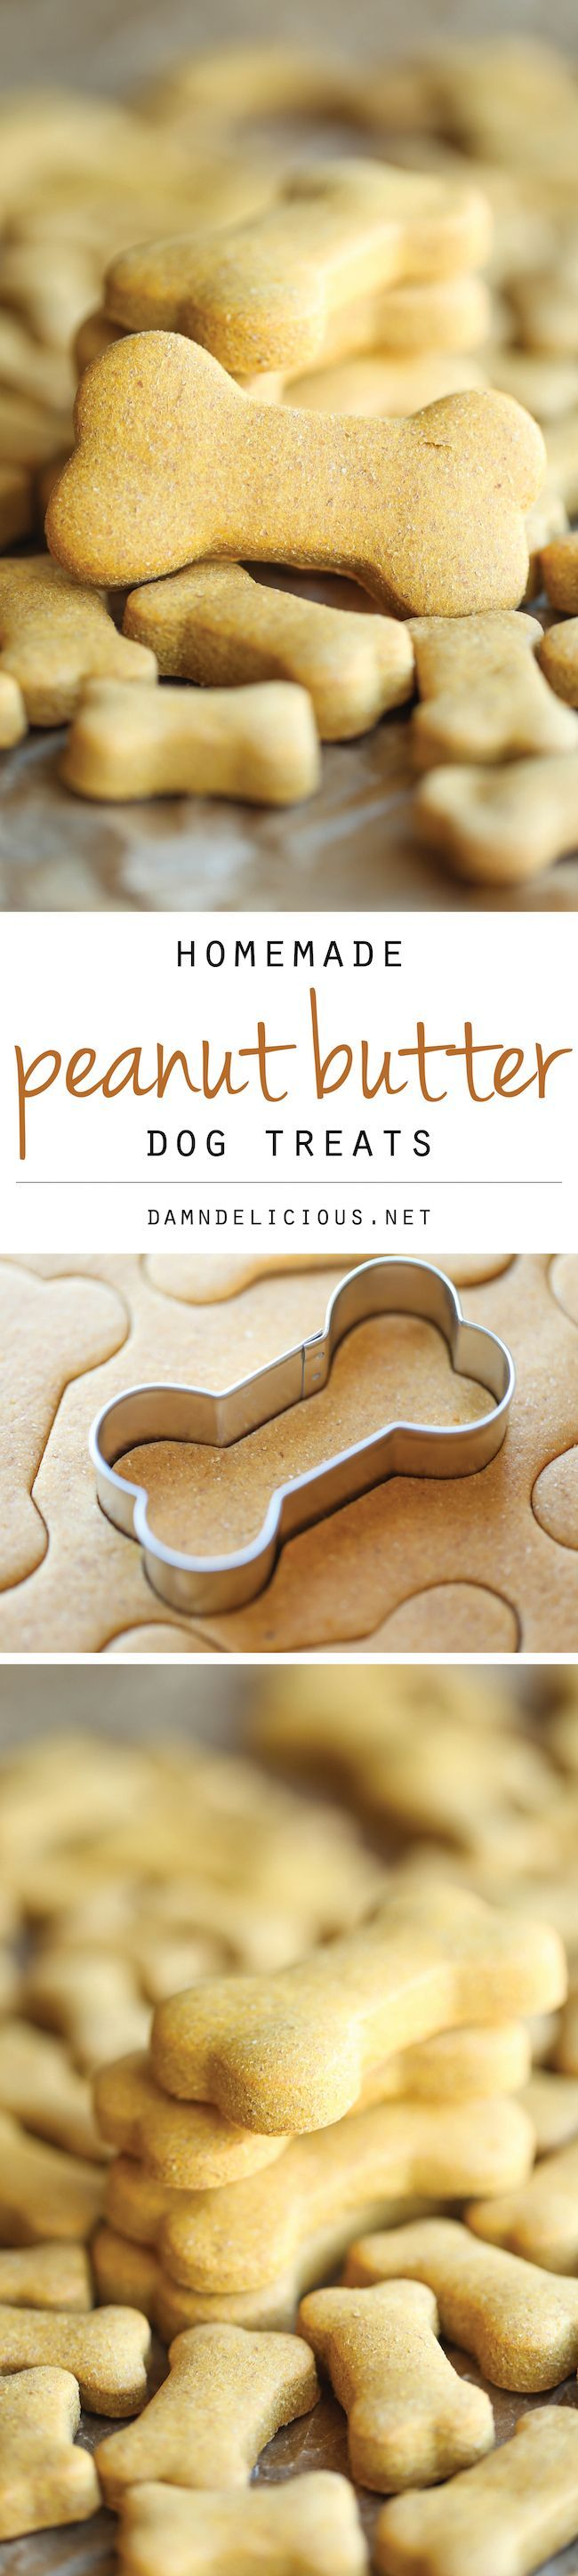 Homemade Peanut Butter Dog Treats – The easiest homemade dog treats ever – simply mix, roll and cut. Easy peasy, and so much